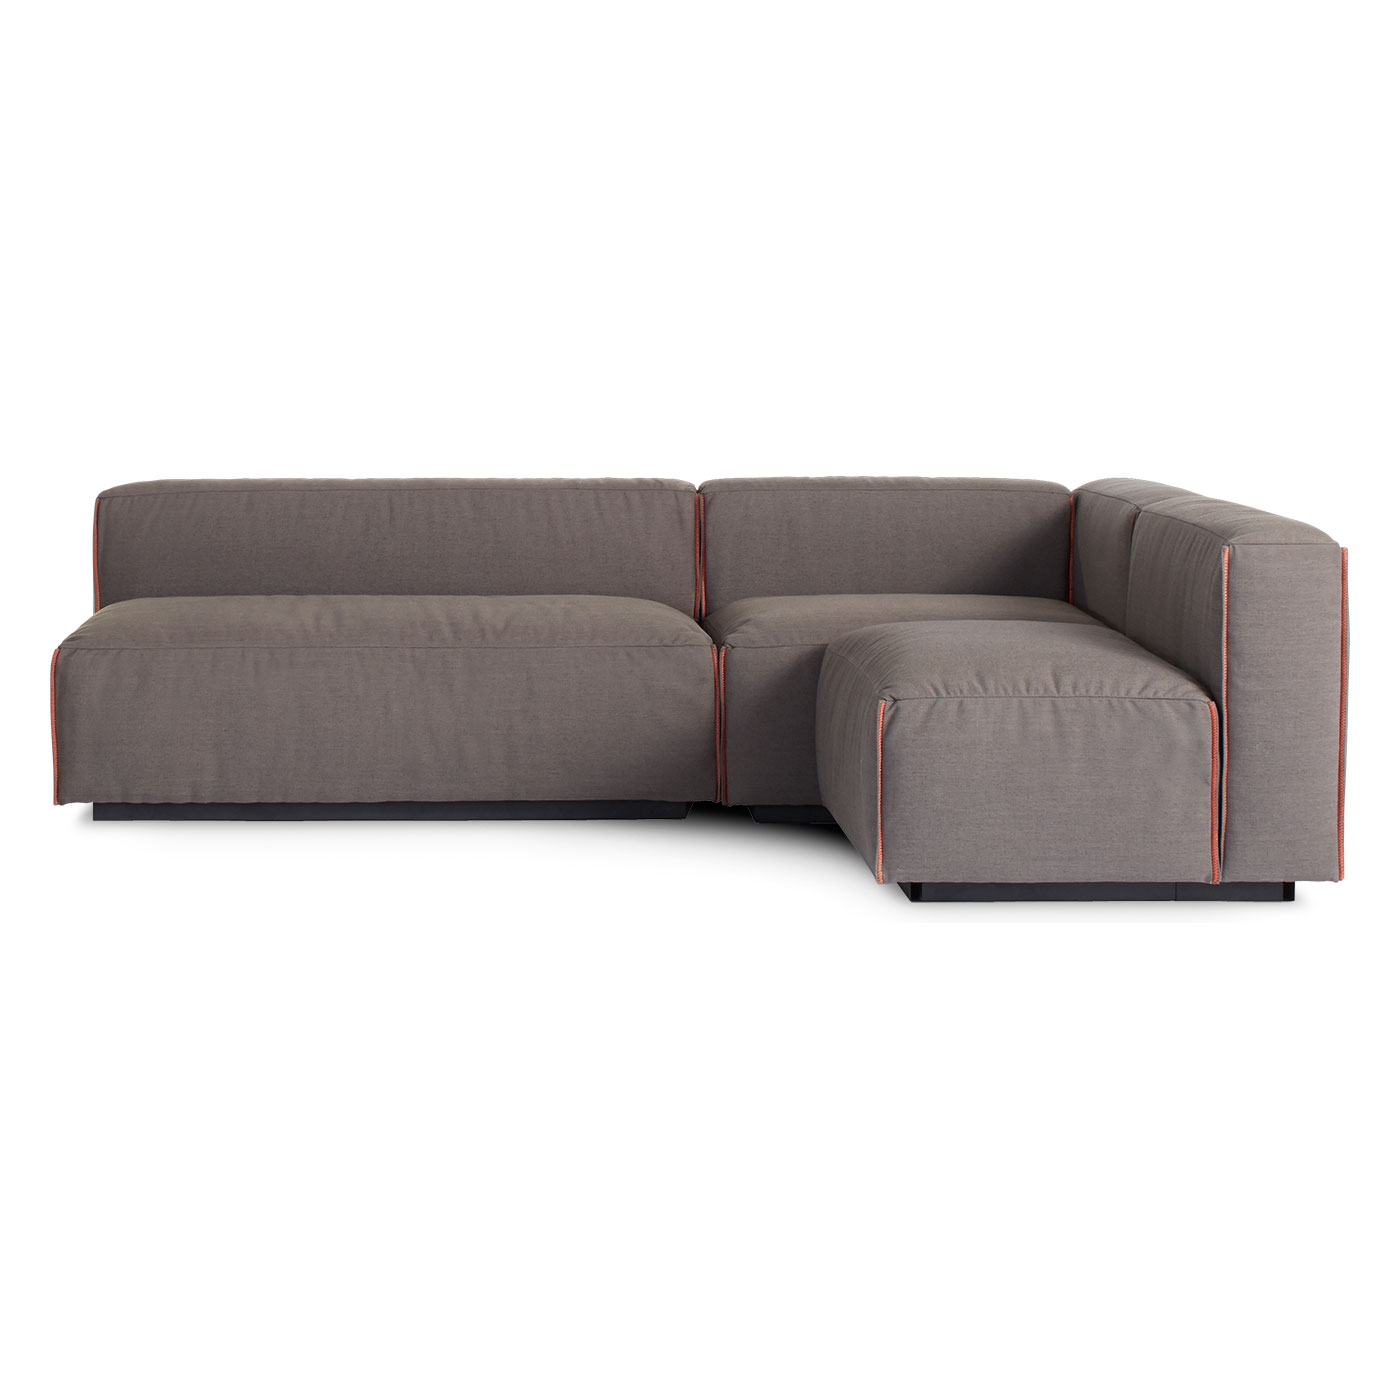 Cleon Medium Sectional Armless Sectional Blu Dot With Regard To Armless Sectional Sofas (Image 8 of 15)